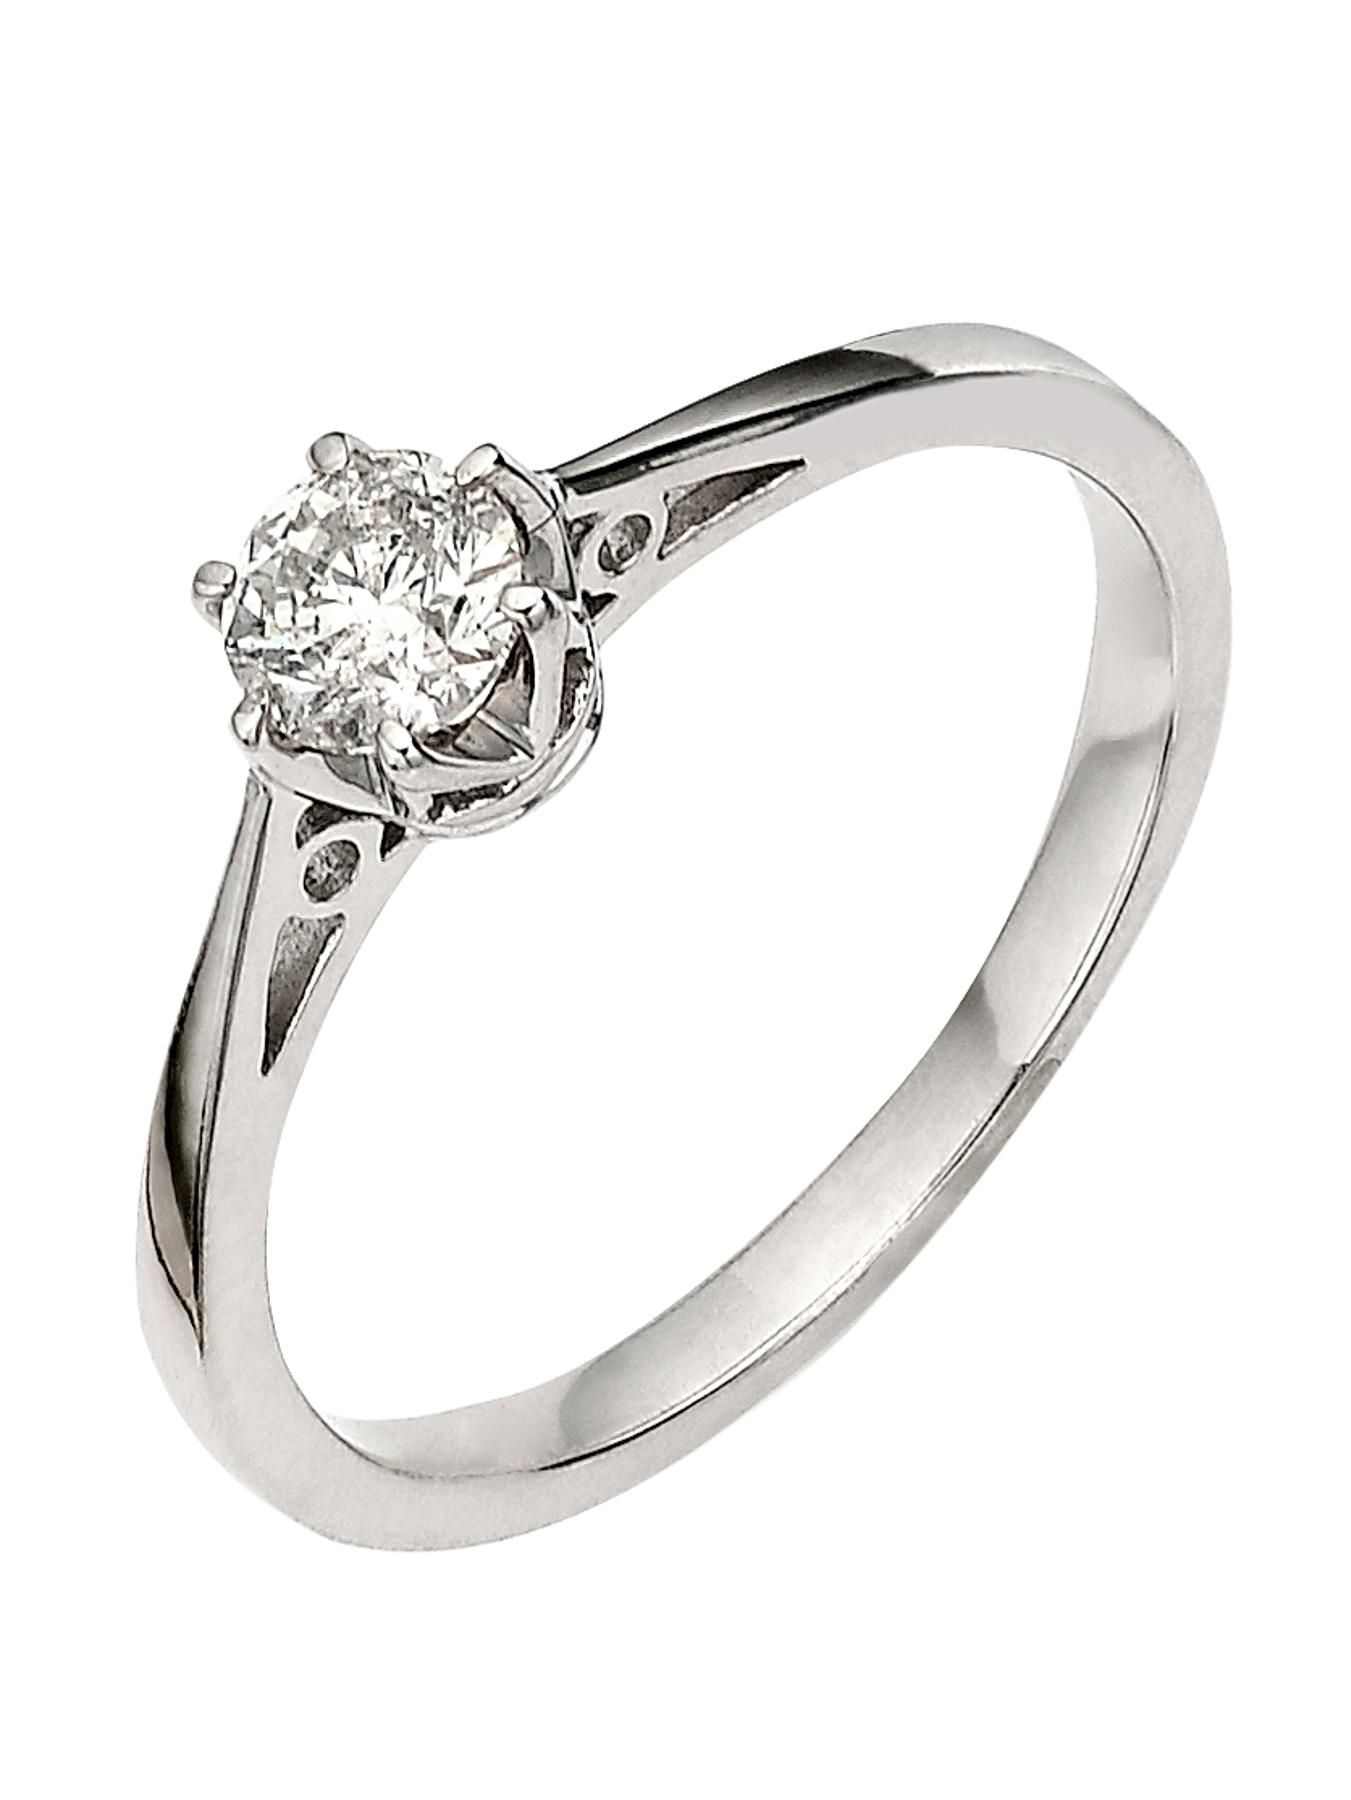 Diamond Solitaire Engagement 9ct White Gold Ring RRP £635 Size P